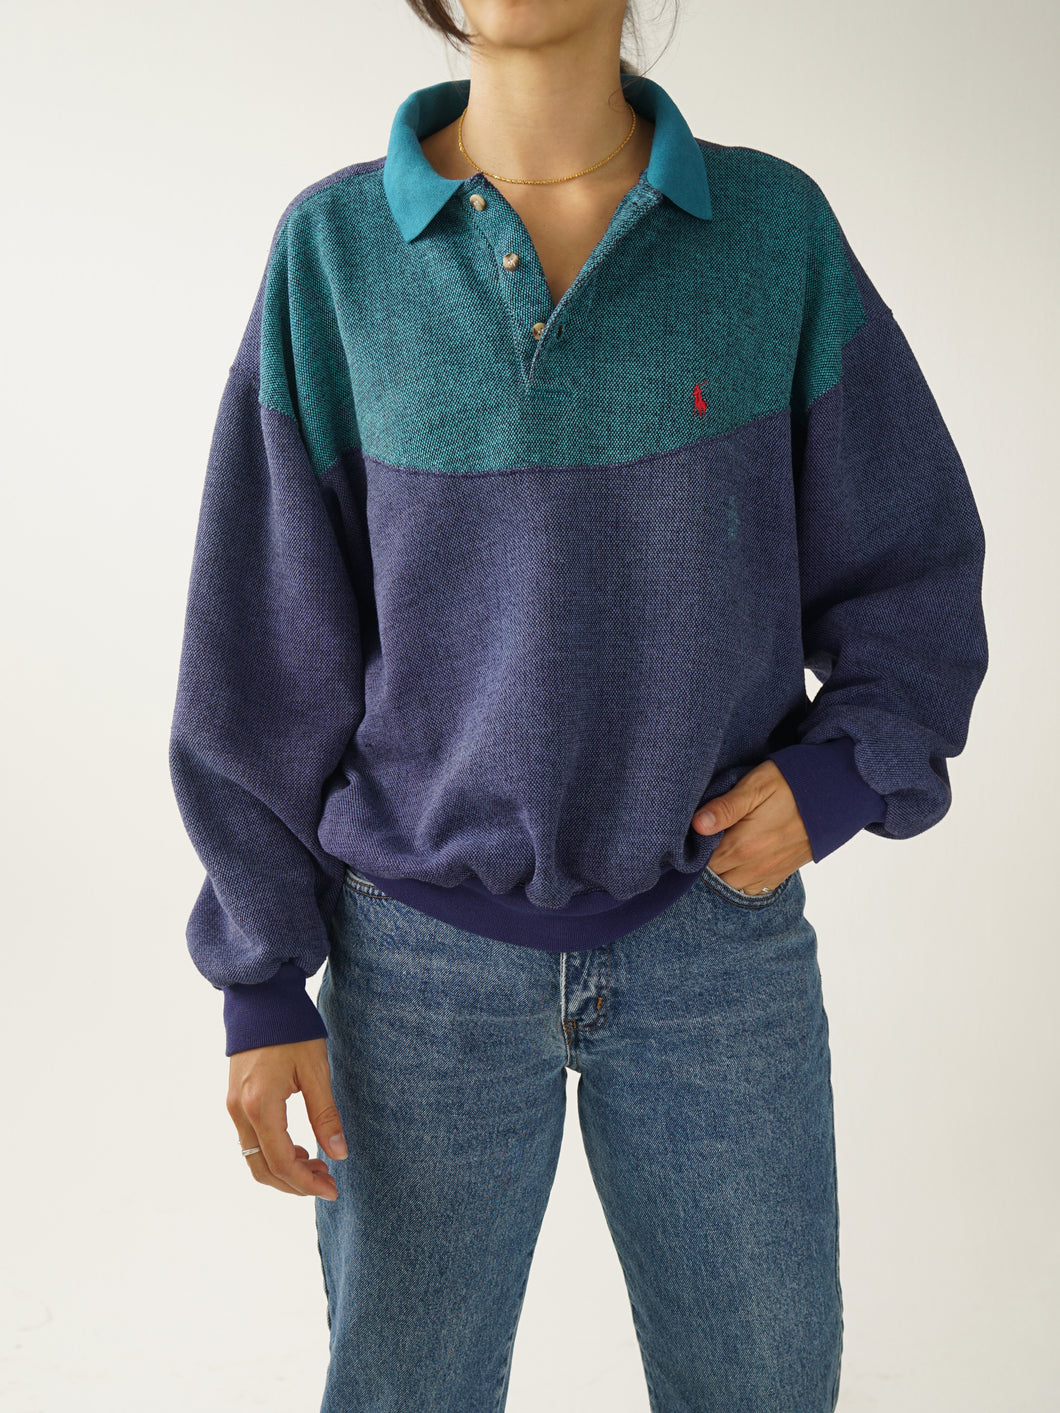 Polo by Ralph Lauren bleu et turquoie long sleeve